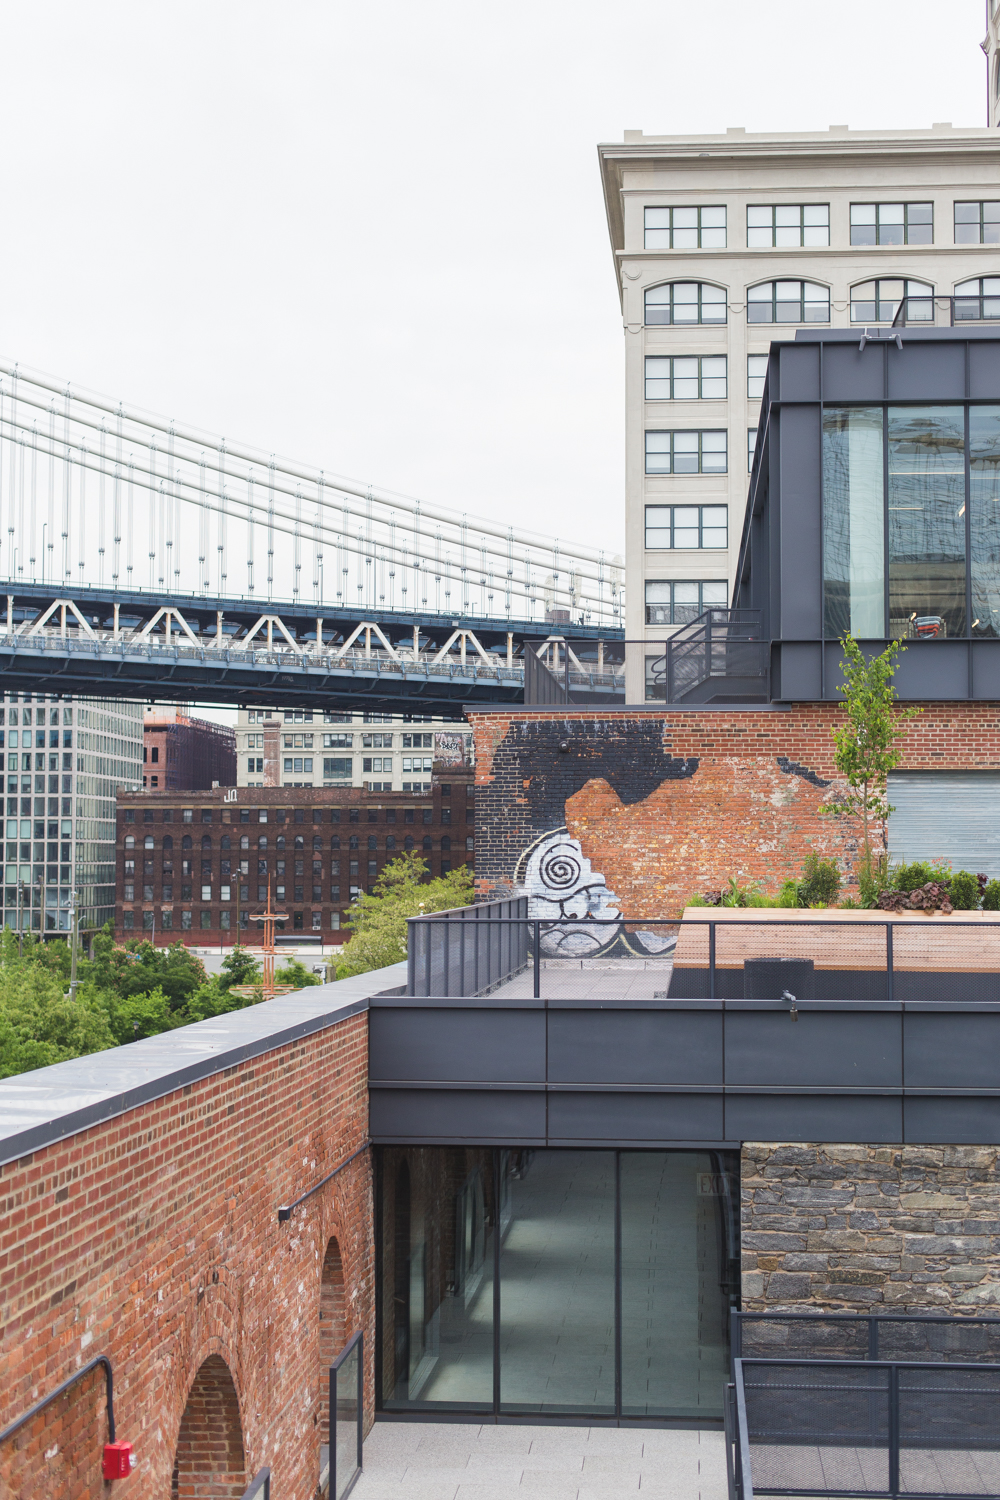 Brooklyn Bridge - First time visiting New York? I'm sharing some practical tips, including where to stay, what to see and how to get around.